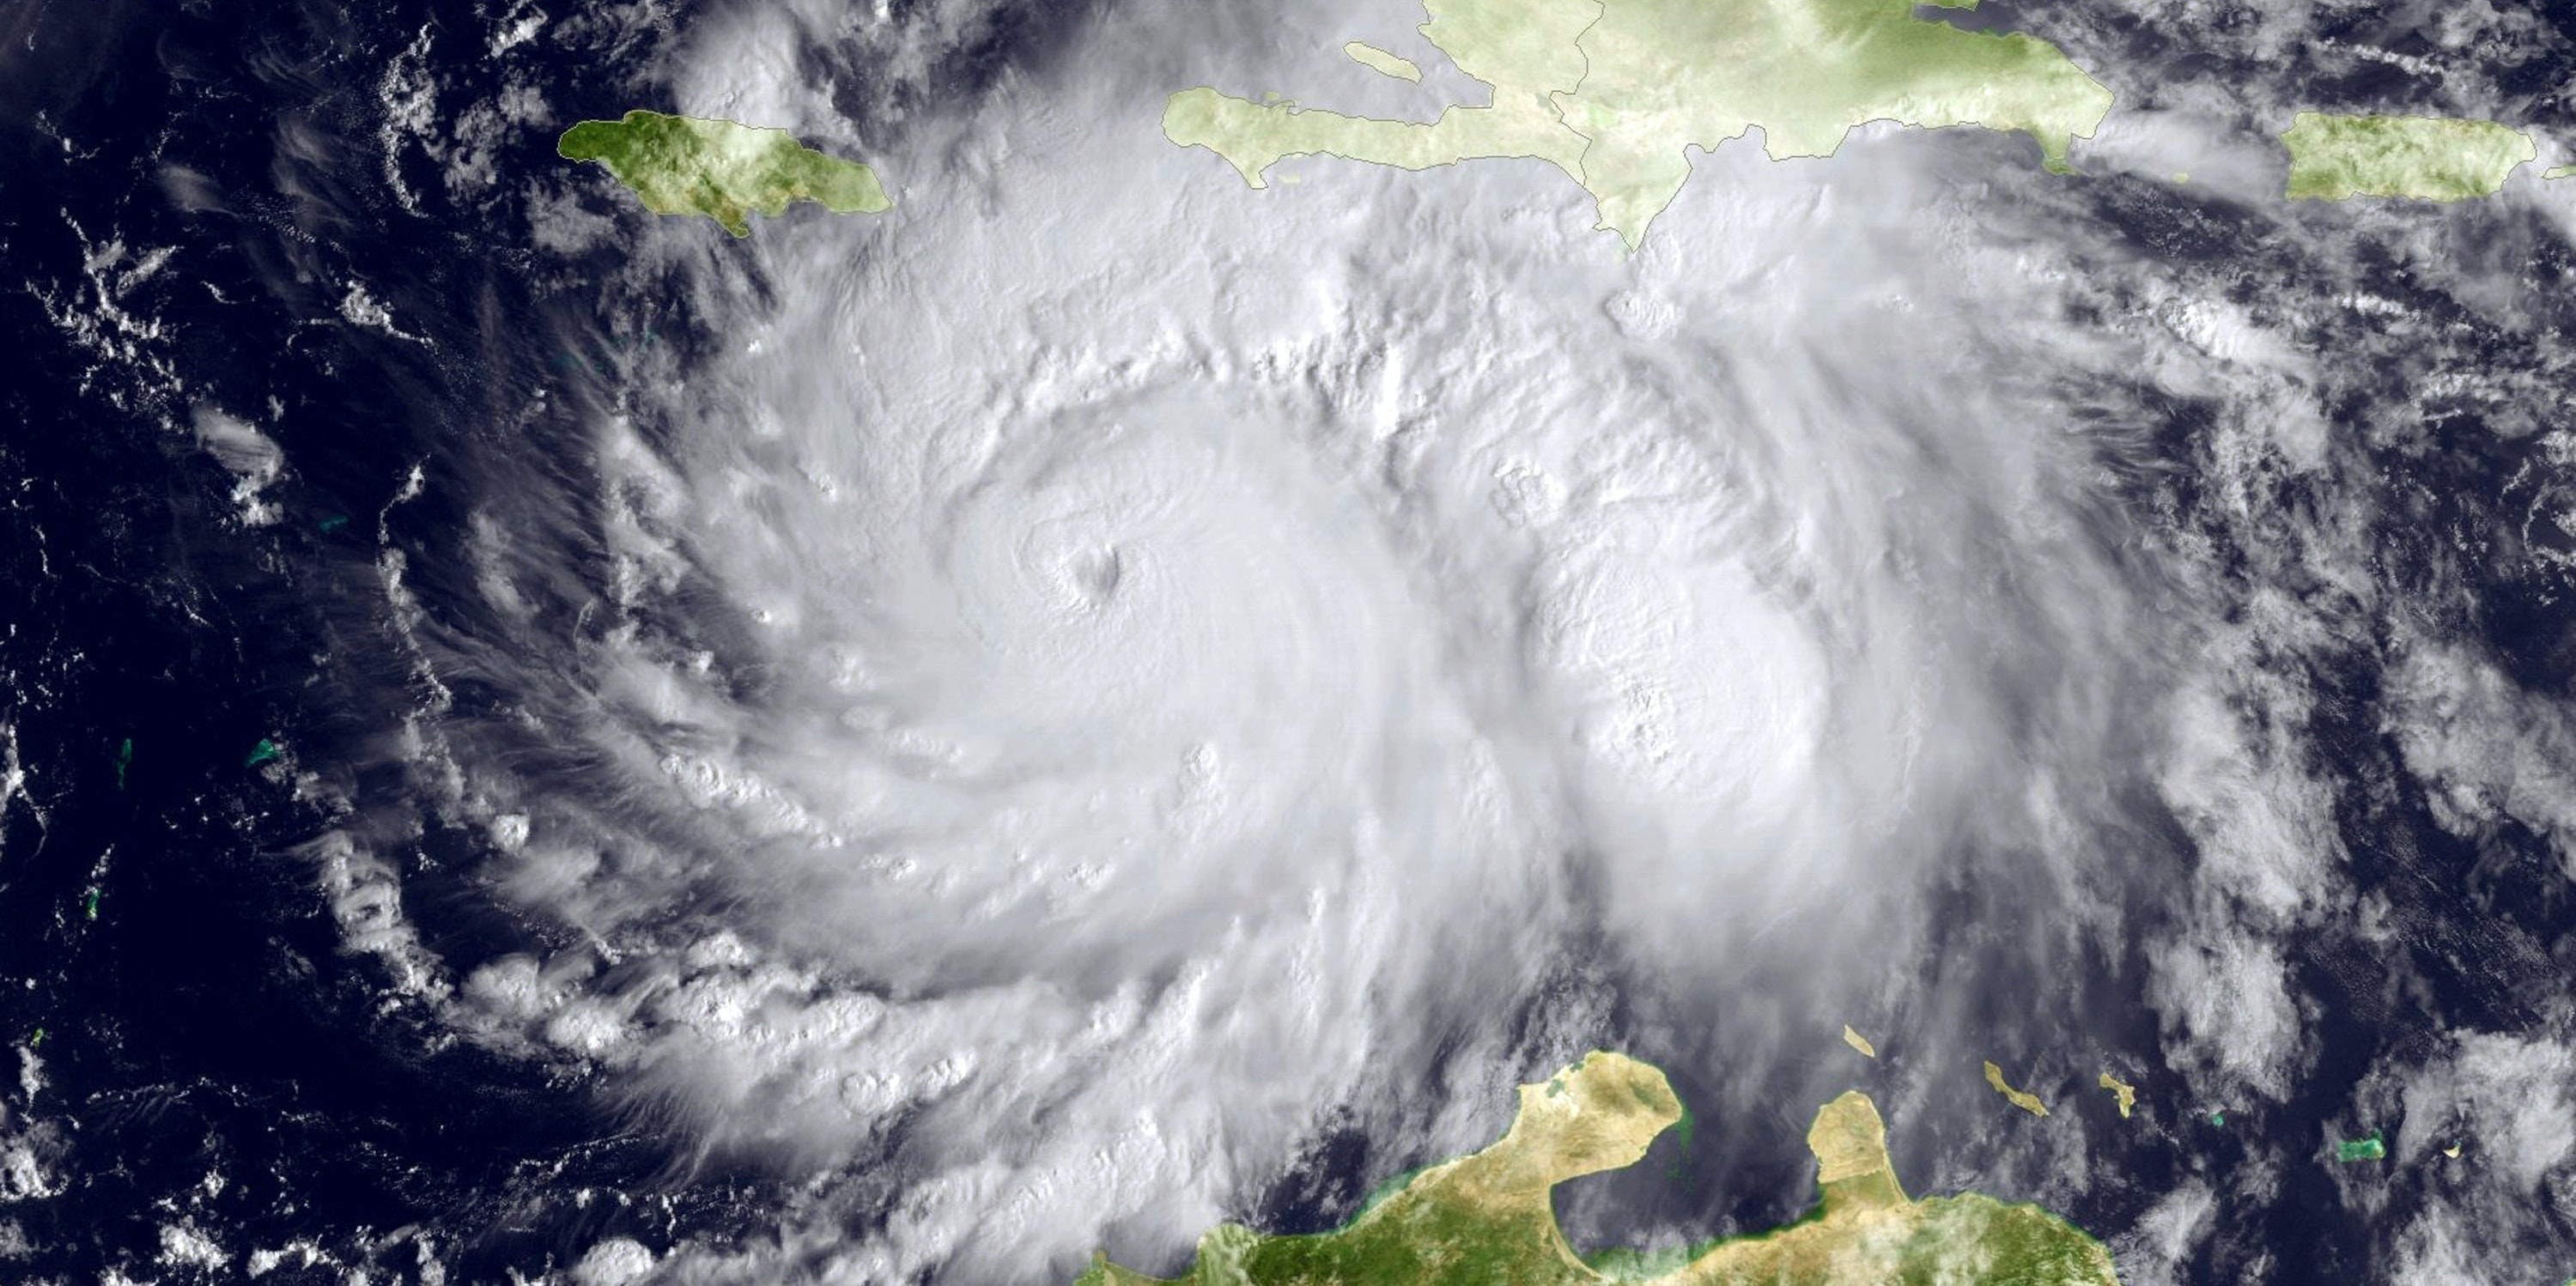 View of Hurricane Matthew seen by the GOES satellite as it barreled towards land on October 3.